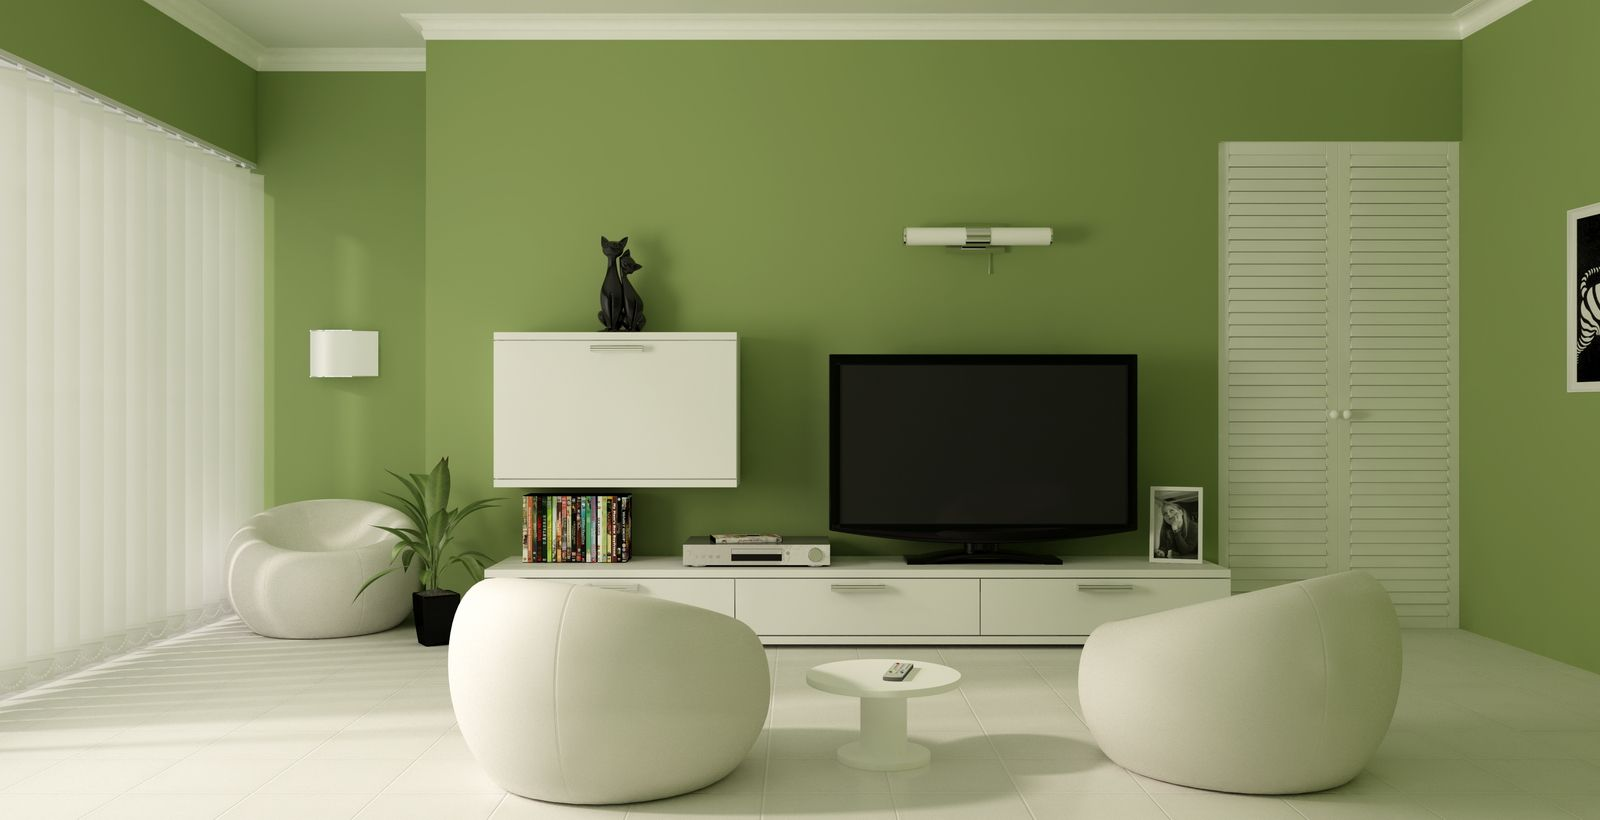 paint combinations for living room. Paint Colors Ideas for Living Room  Green paint colors